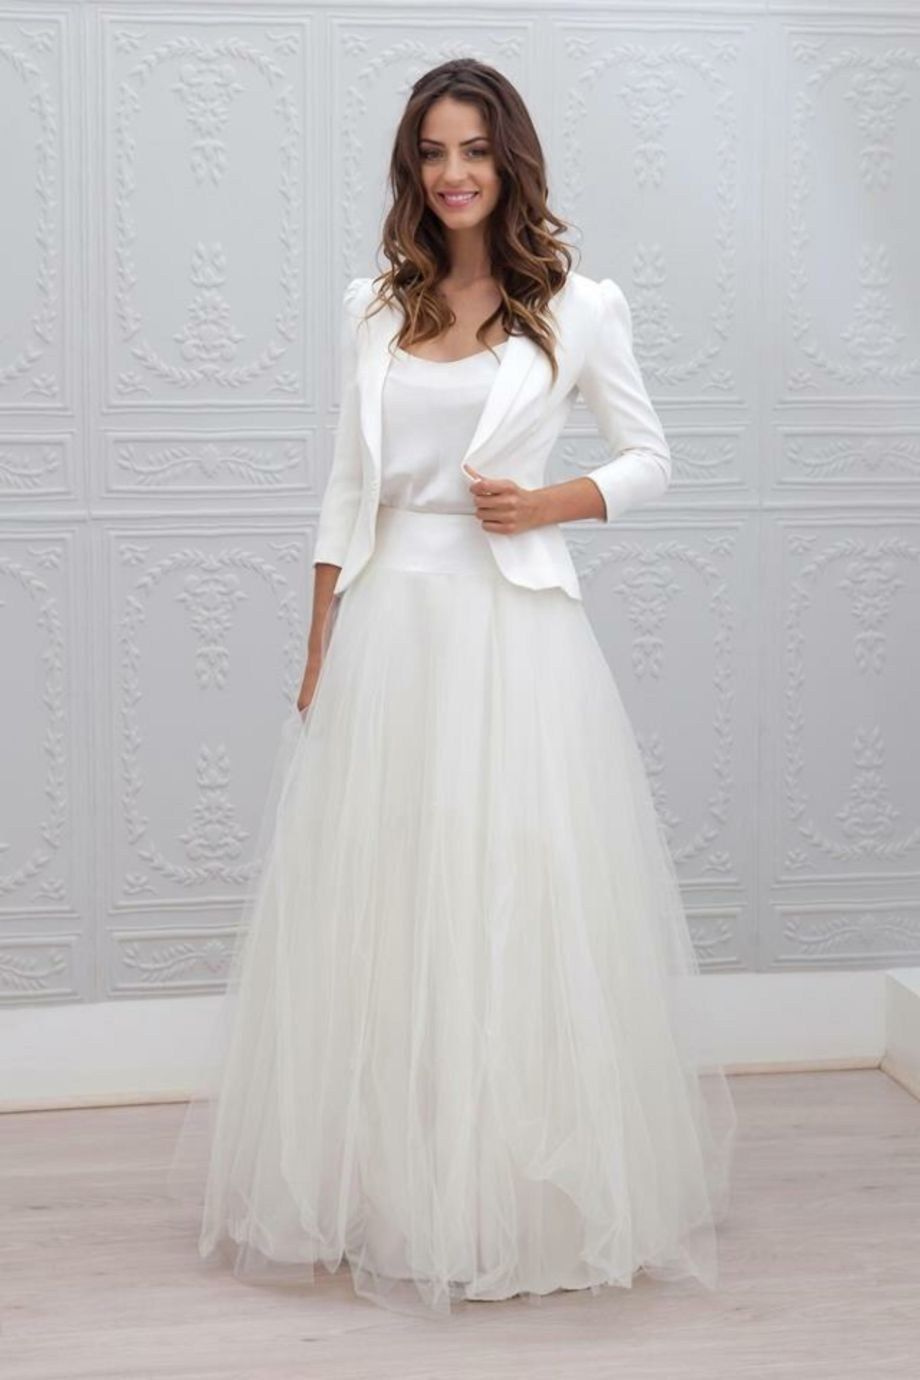 97 Creative And Affordable Wedding Dress Alternative Ideas Vis Wed Alternative Wedding Dresses 2015 Wedding Dresses Affordable Wedding Dresses